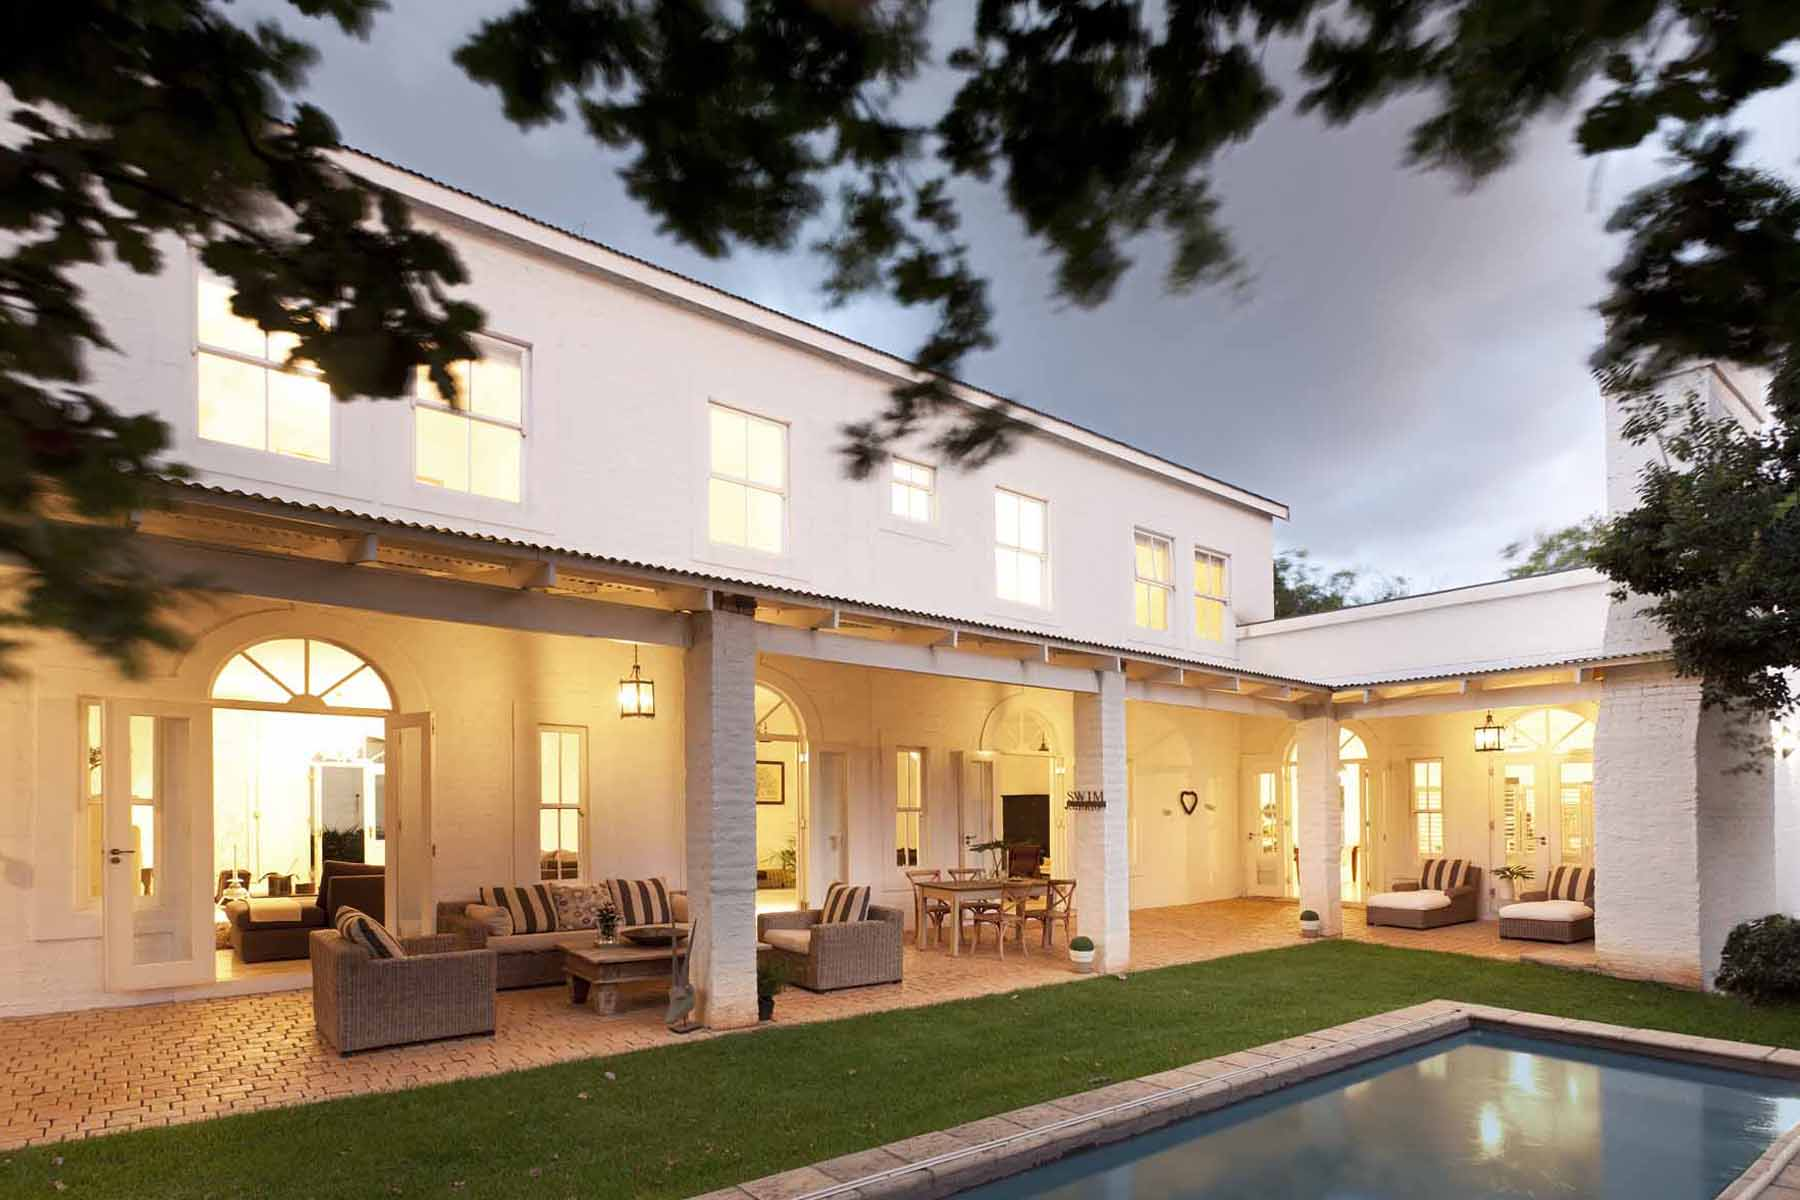 Single Family Home for Sale at Colonial - French Johannesburg, Gauteng, 2196 South Africa